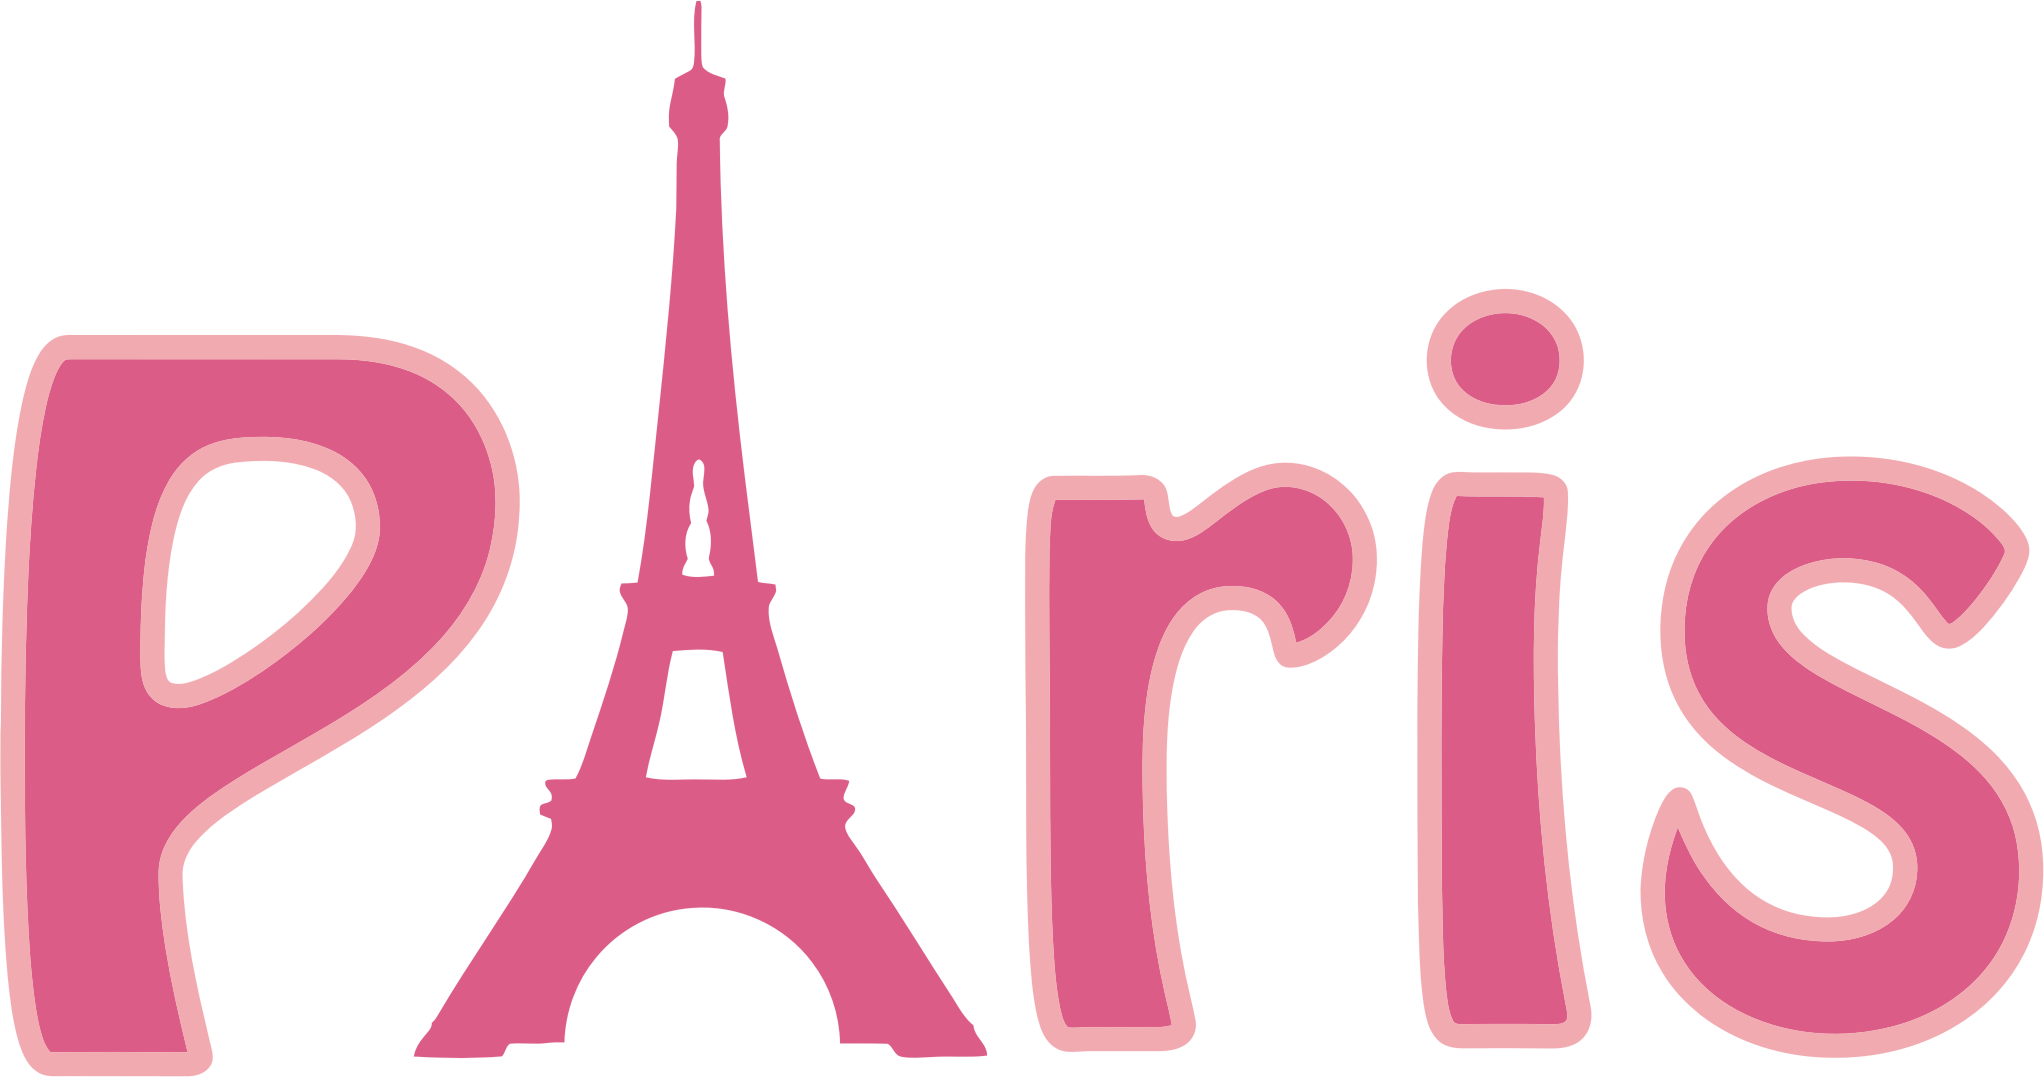 Paris clipart prismatic. Typography icons png free